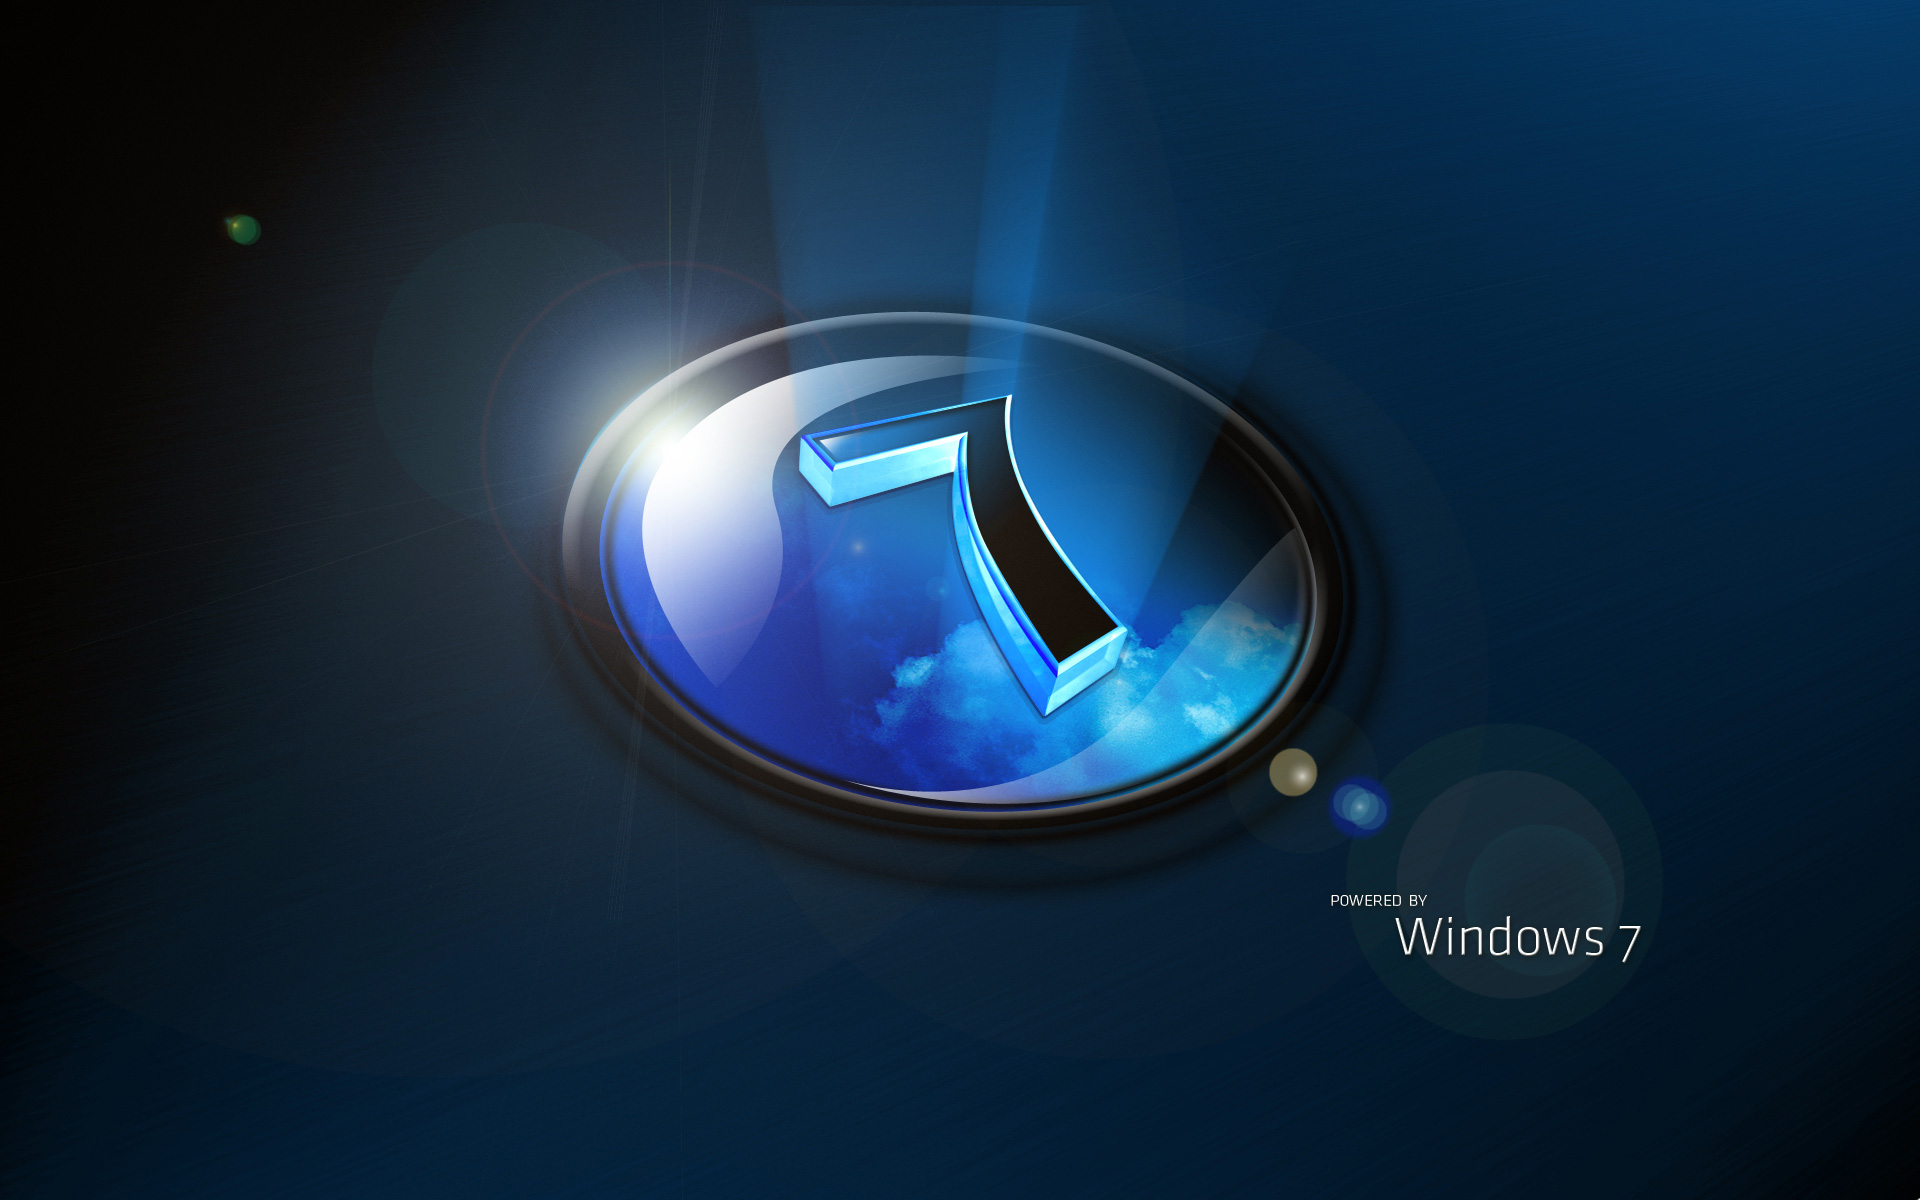 Download Windows 7 Reflective Logo HD Wallpaper 3680 Full Size 1920x1200